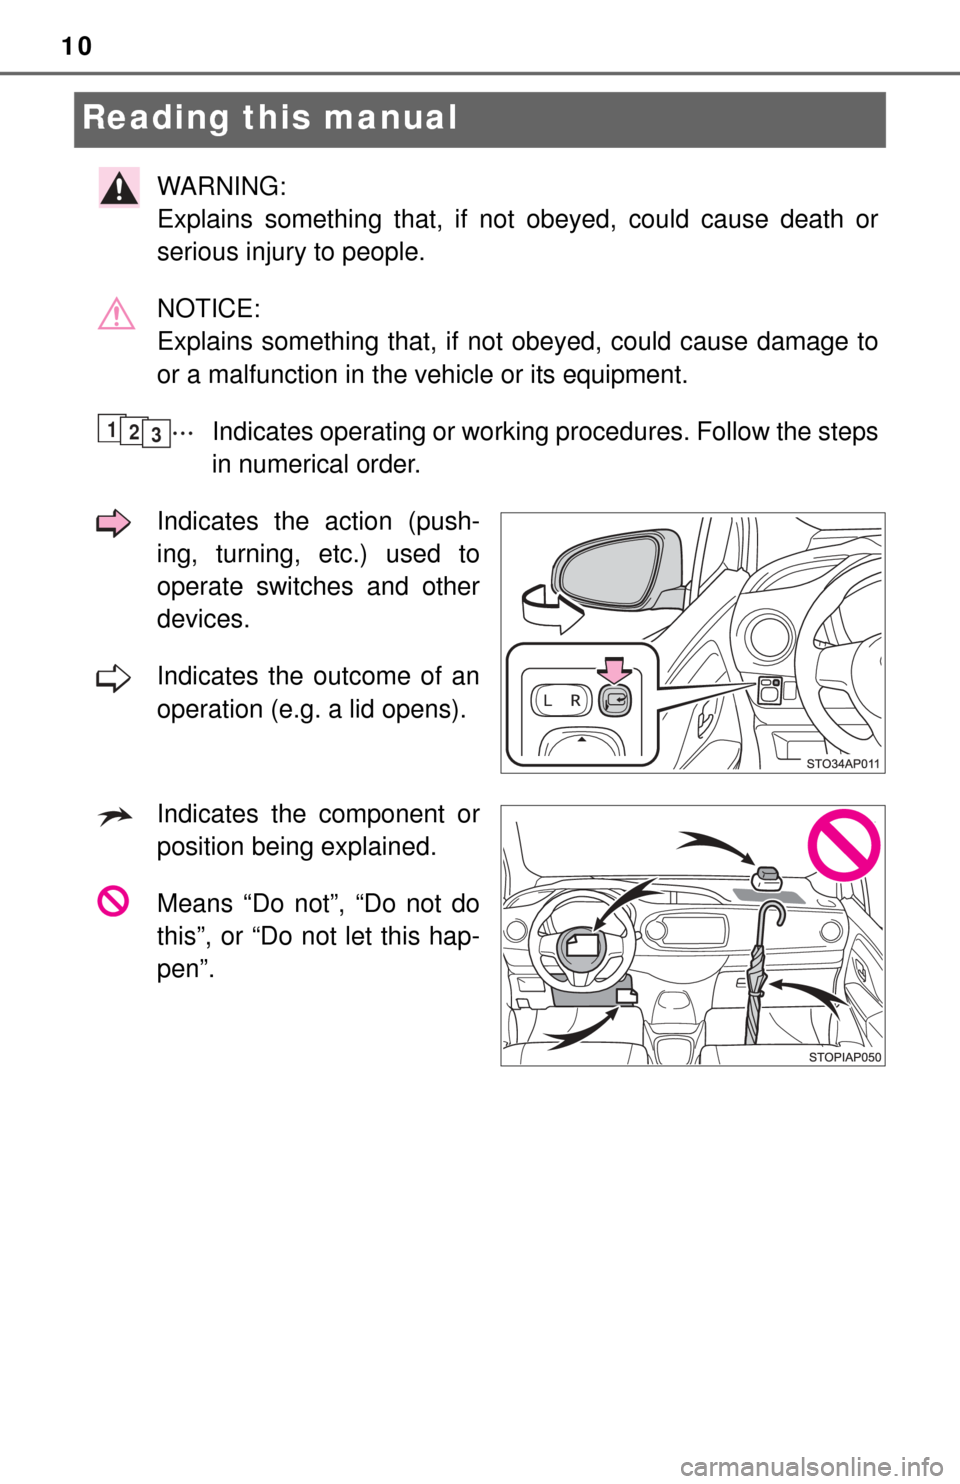 TOYOTA YARIS 2015 3.G Owners Manual, Page 10